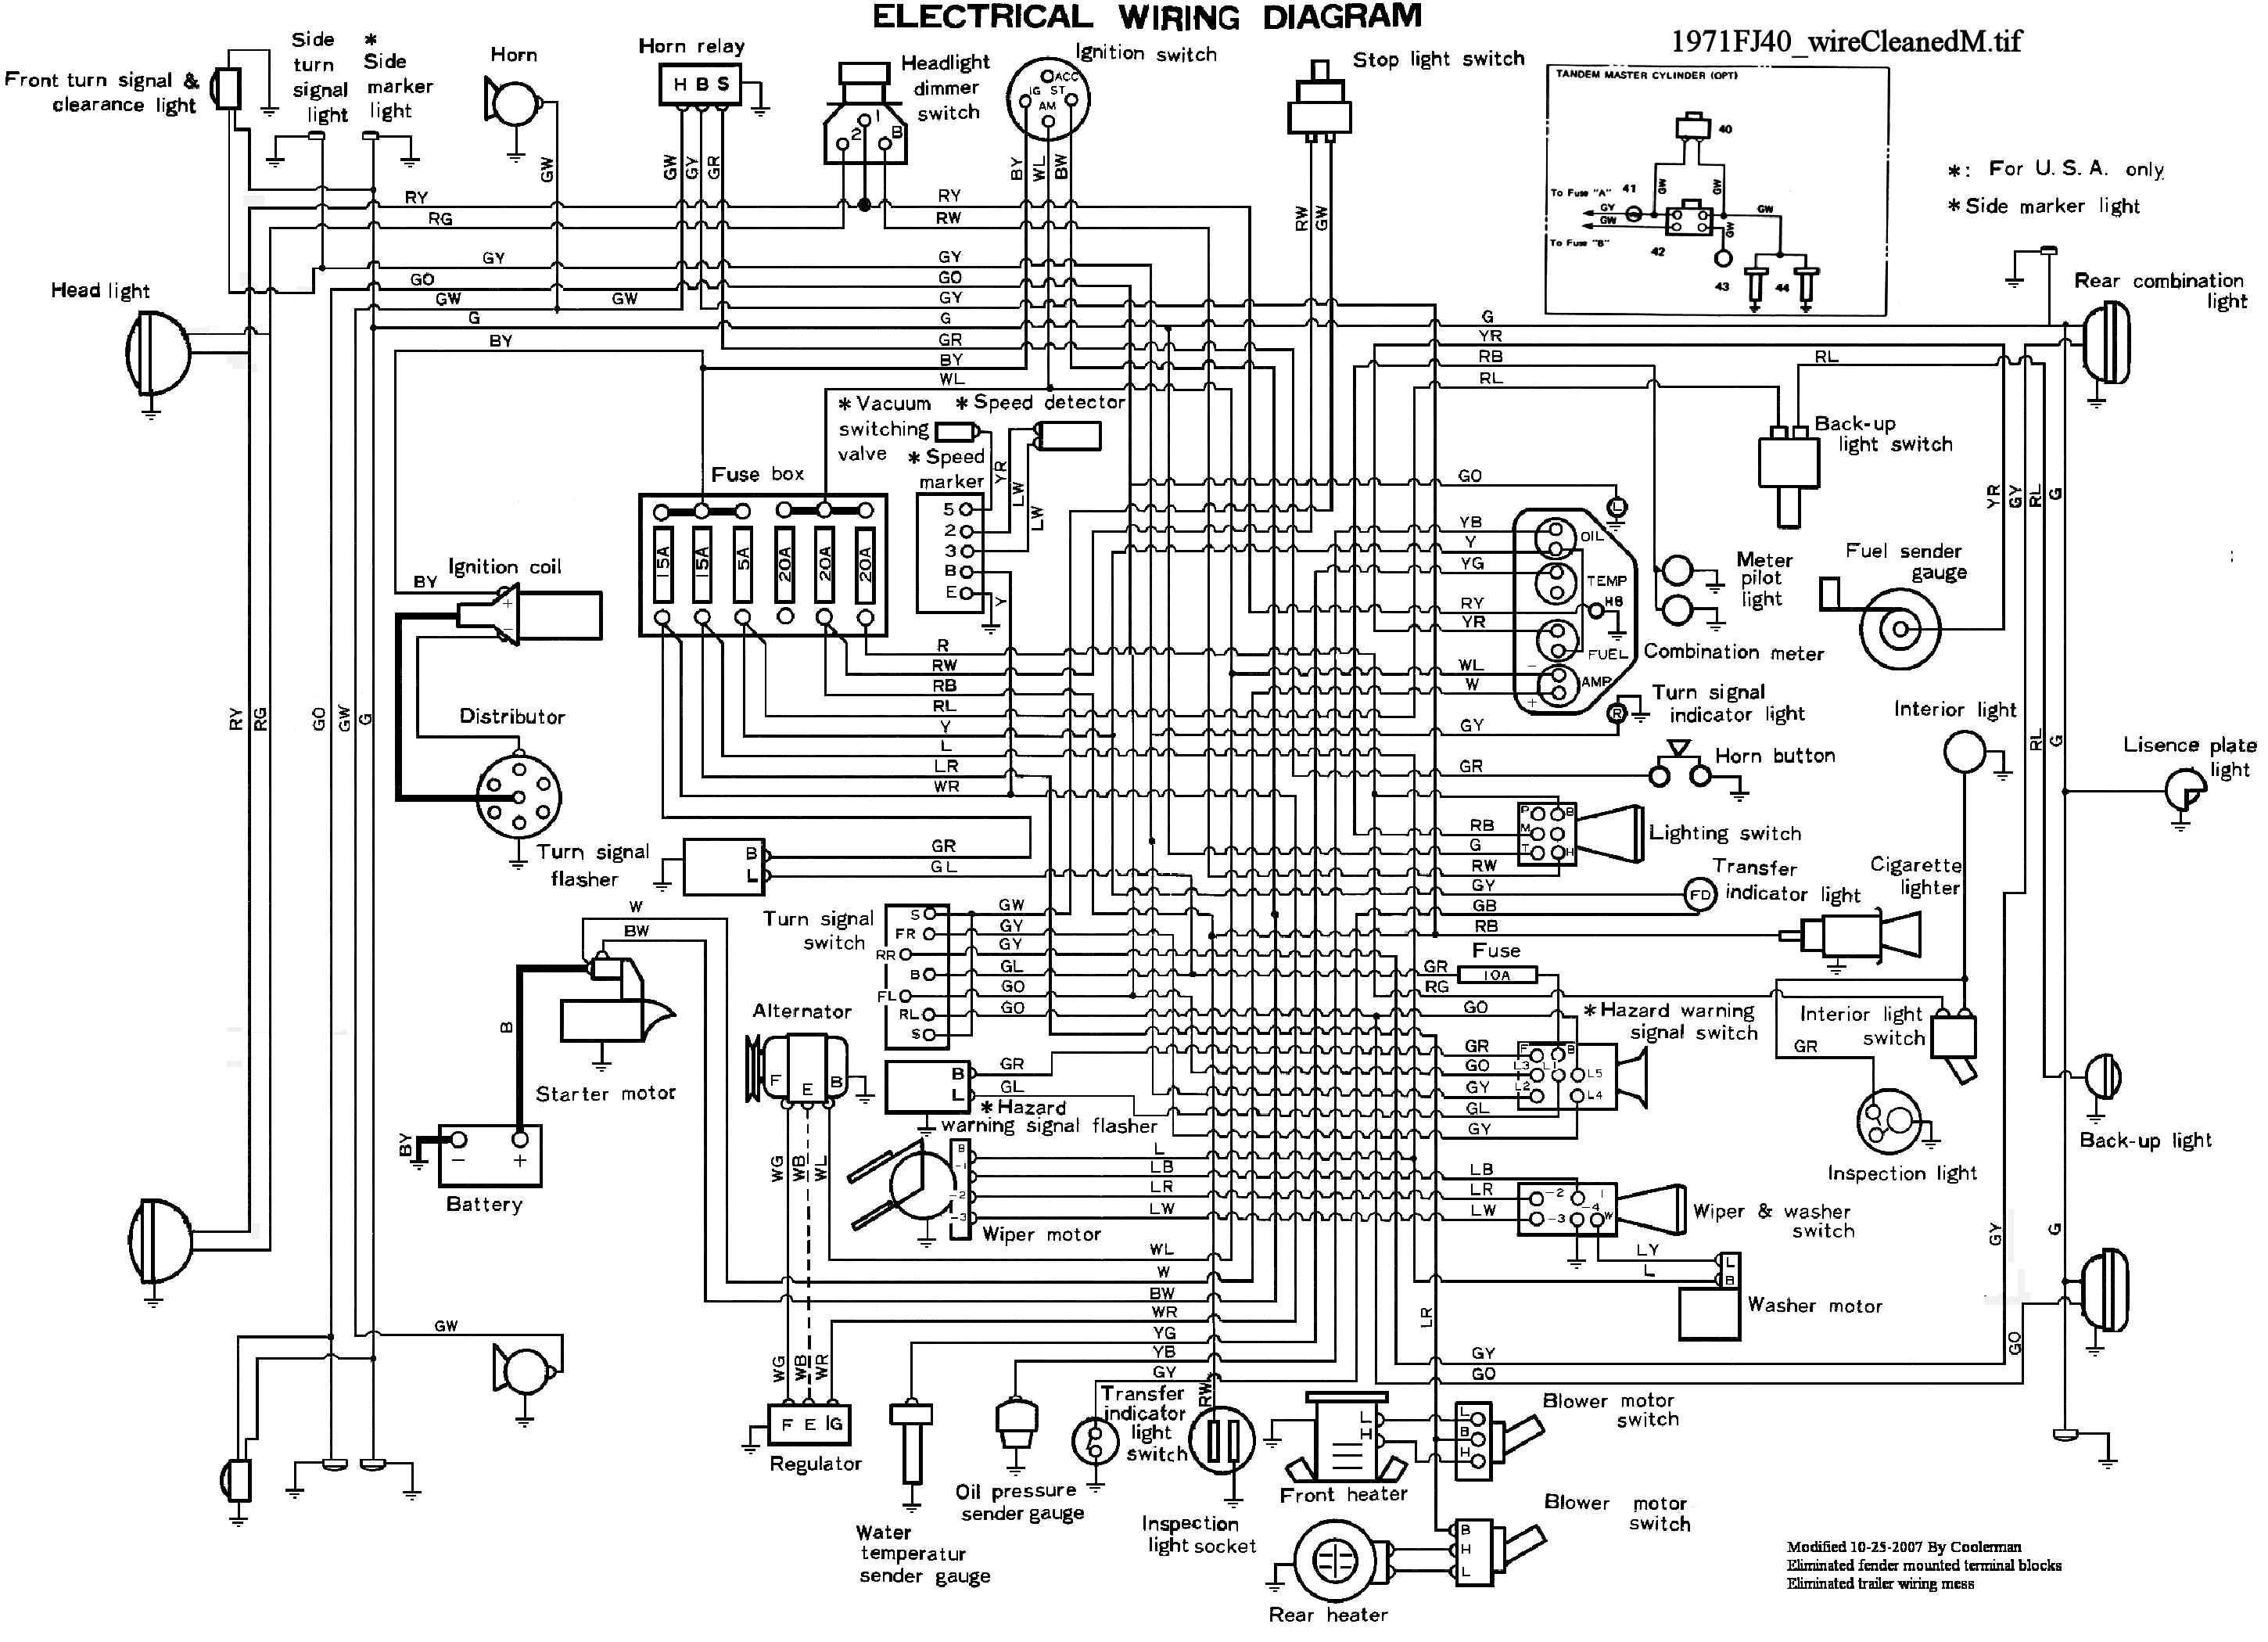 71fj40_wireCleanedM toyota a56811 wiring diagram toyota wiring diagrams instruction toyota tamaraw fx electrical wiring diagram at n-0.co